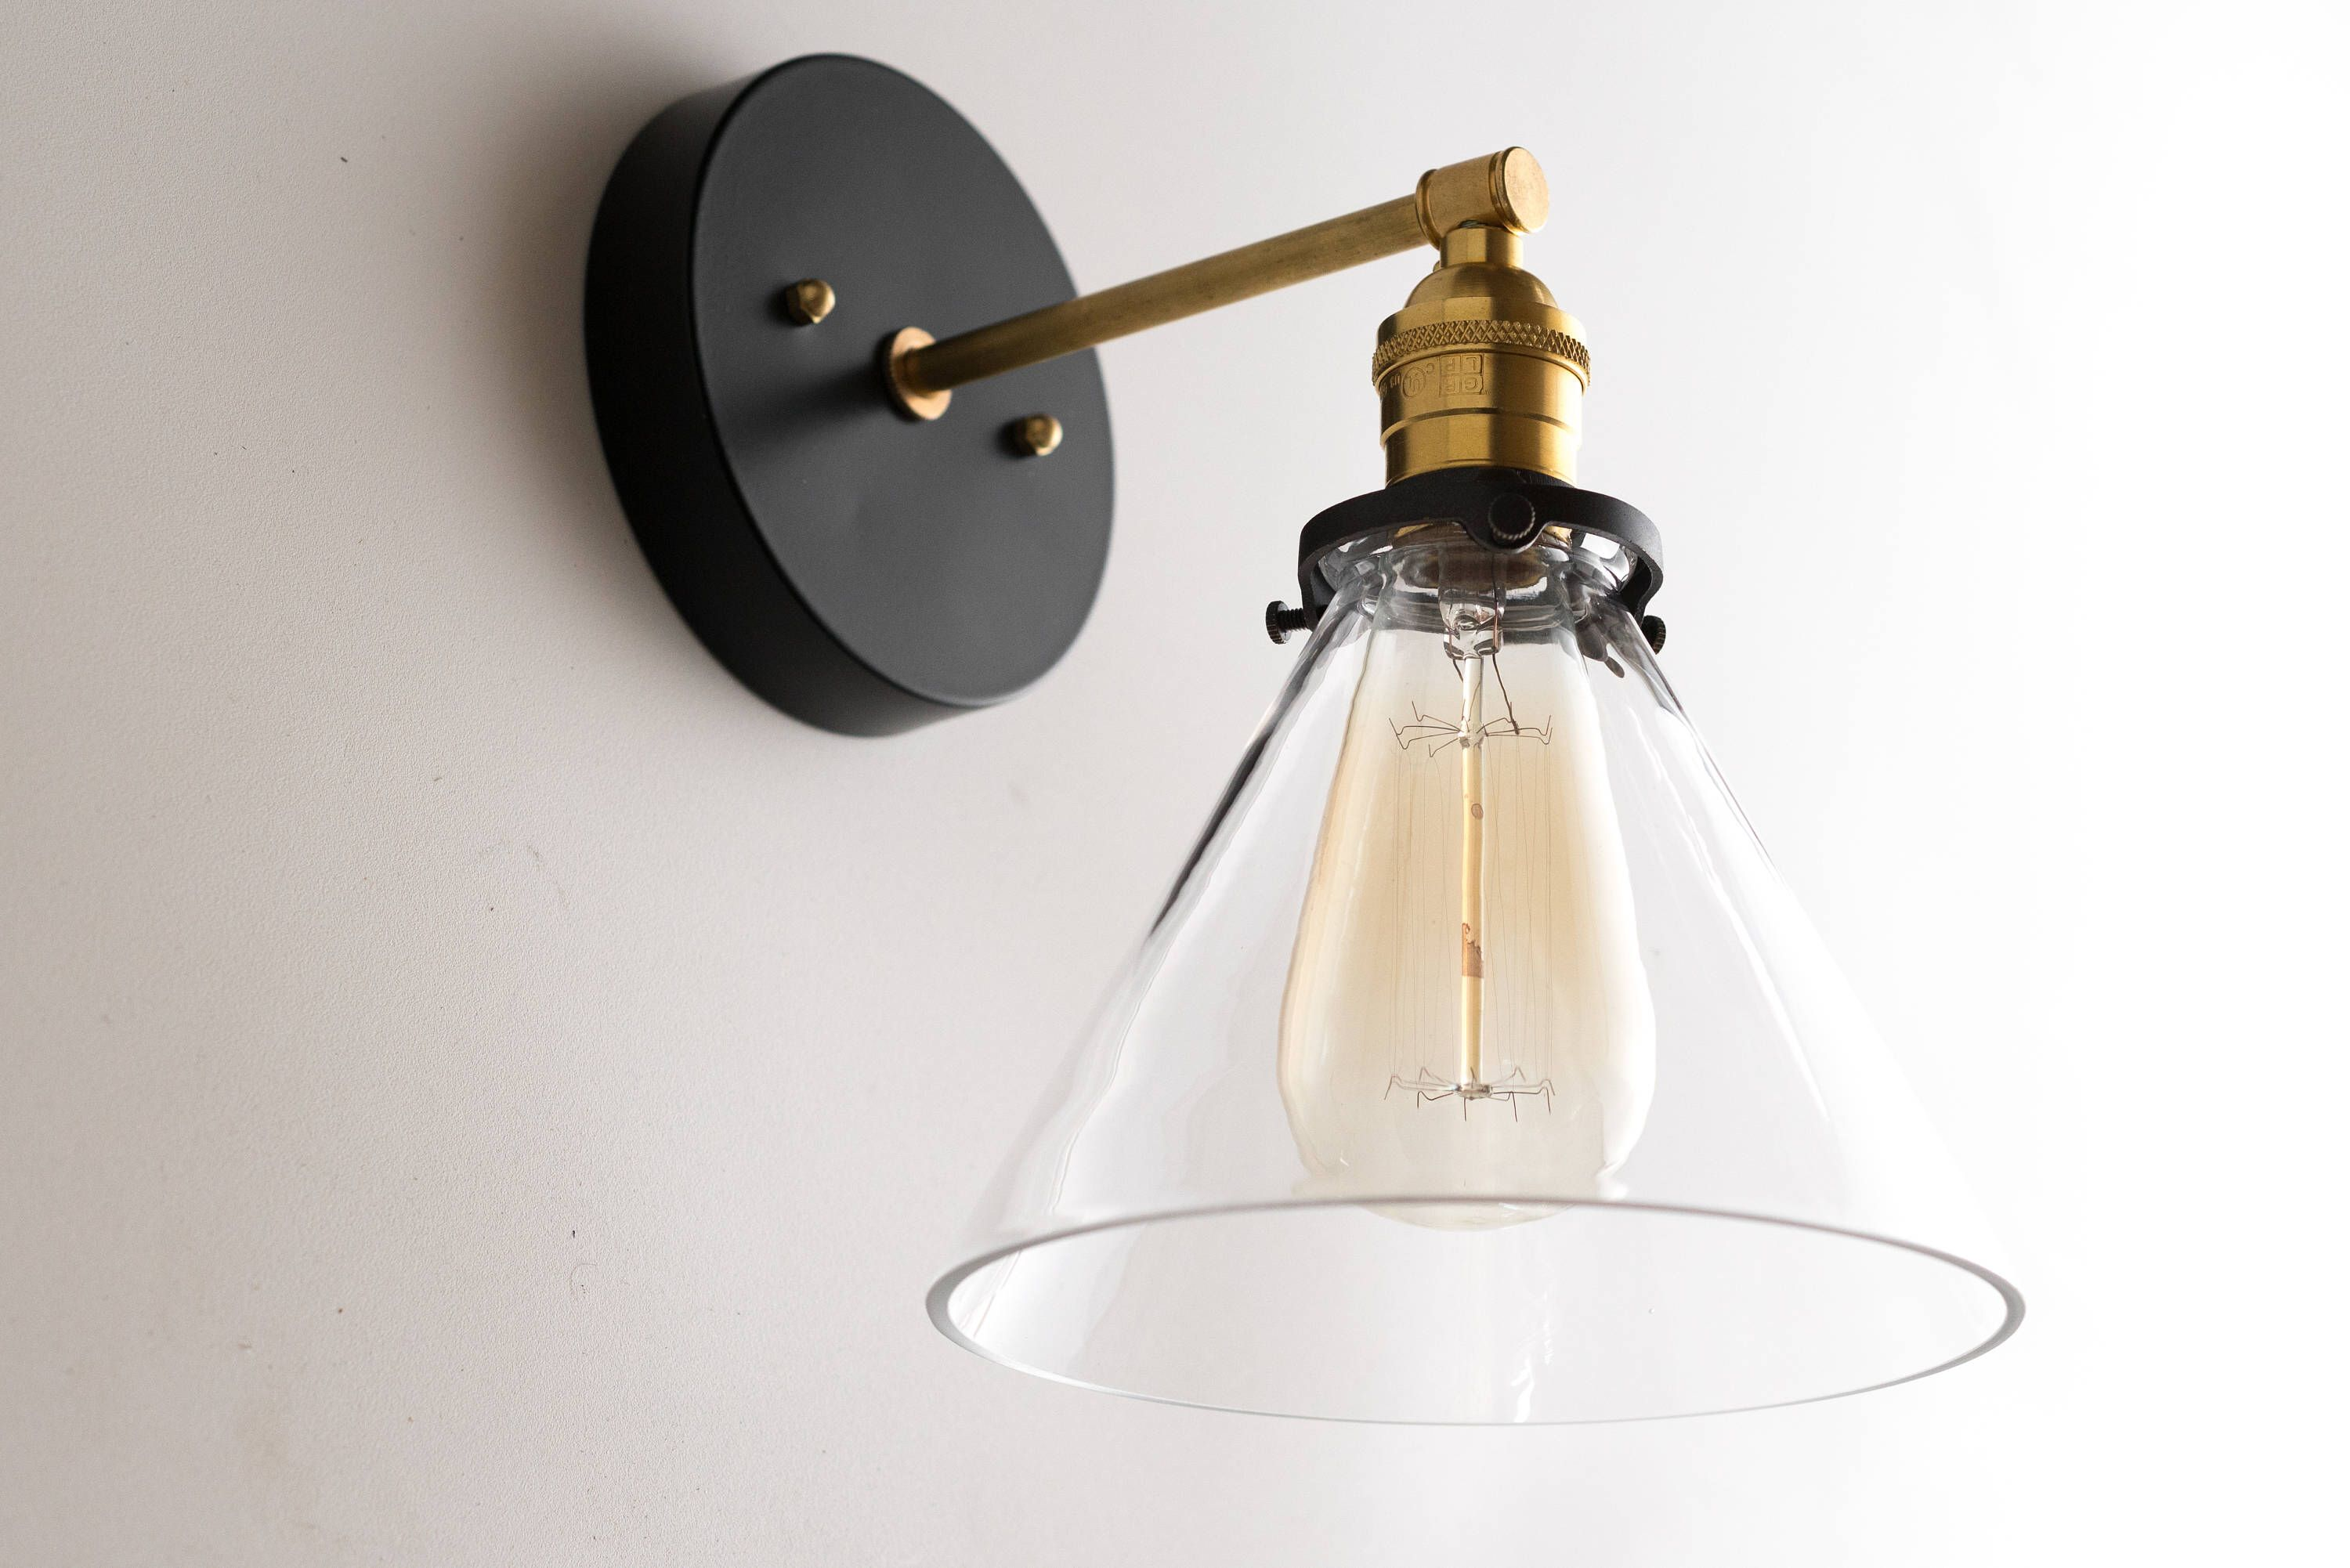 Sconce Modern Wall Sconces Black Gold Wall Light Brass Etsy Brass Wall Light Brass Light Fixture Modern Black Wall Sconces